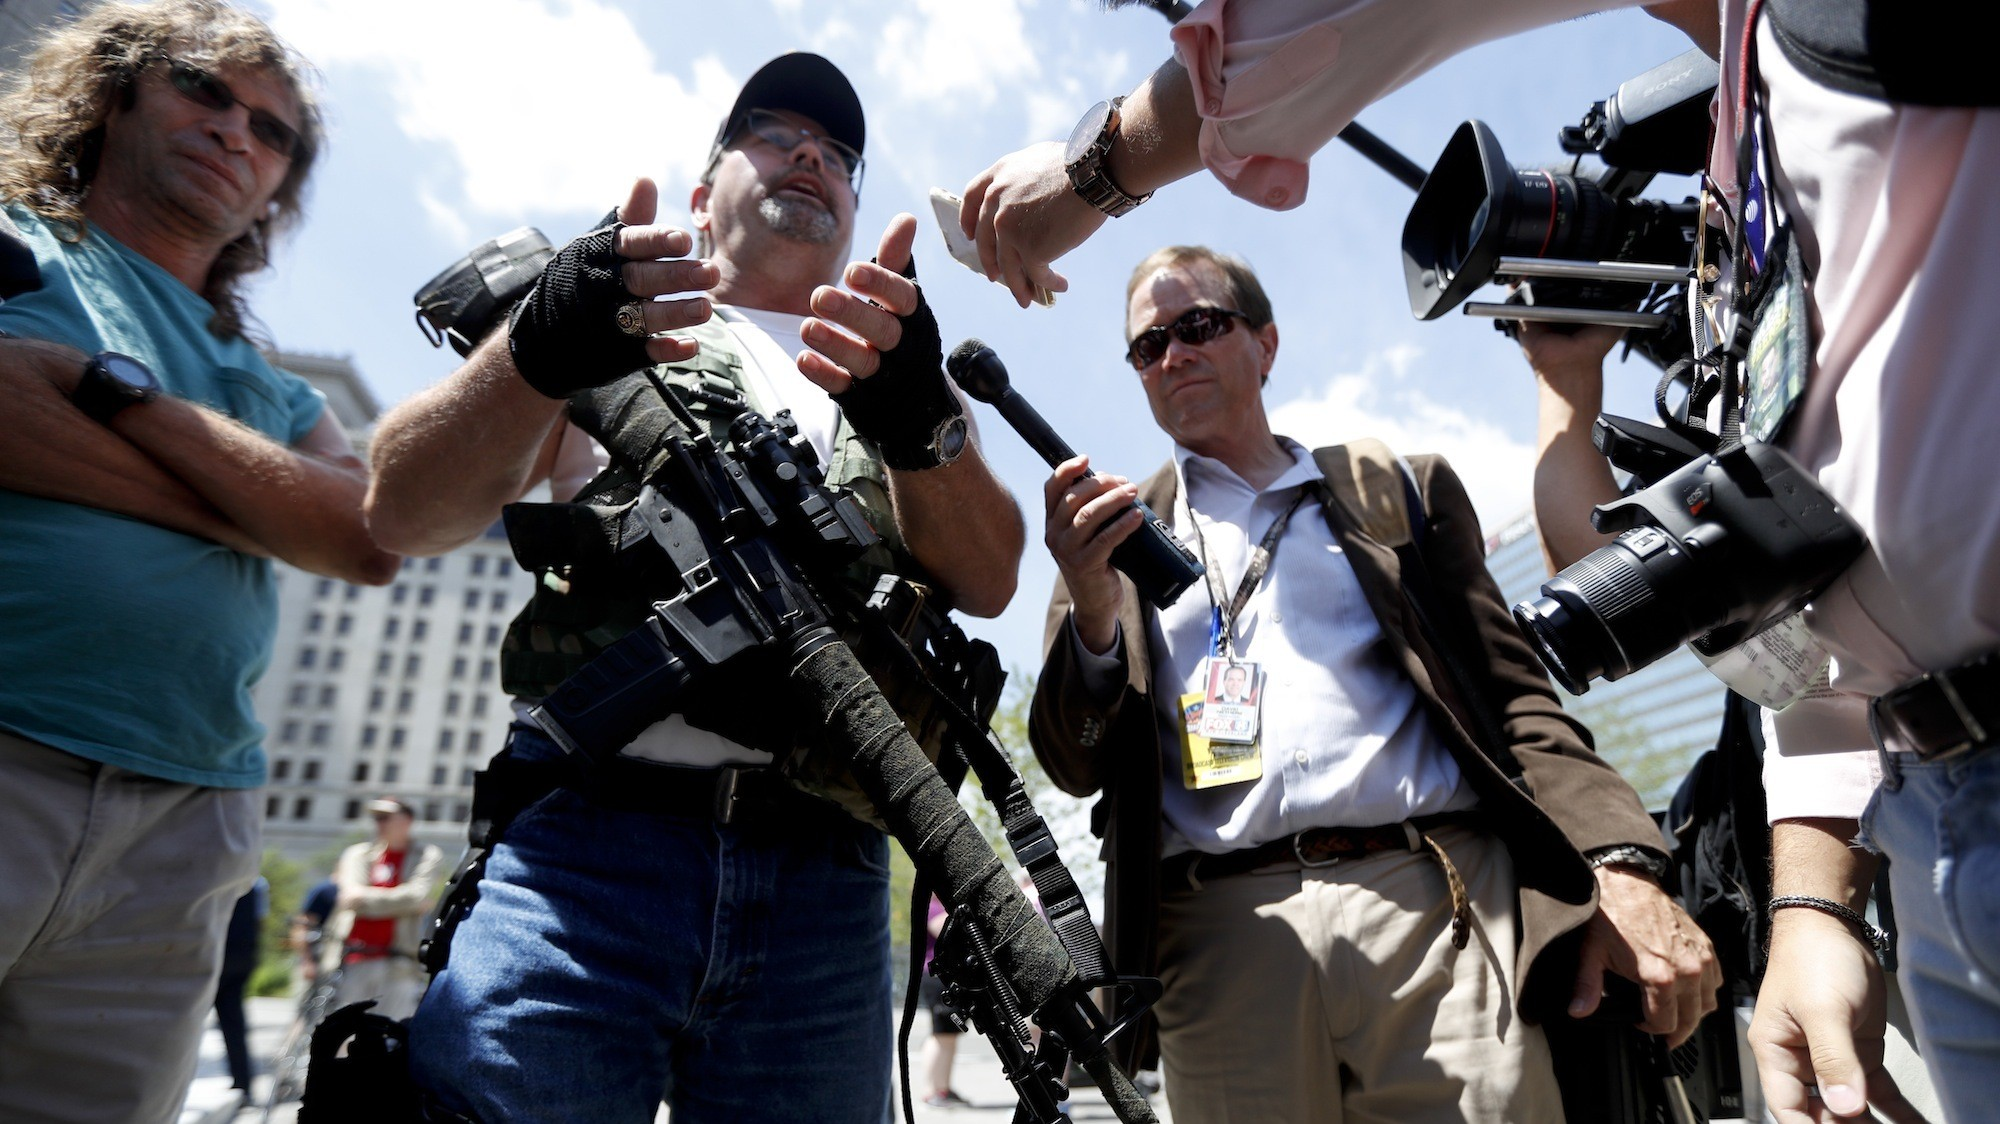 Ohio's open-carry gun law comes under fire ahead of GOP convention